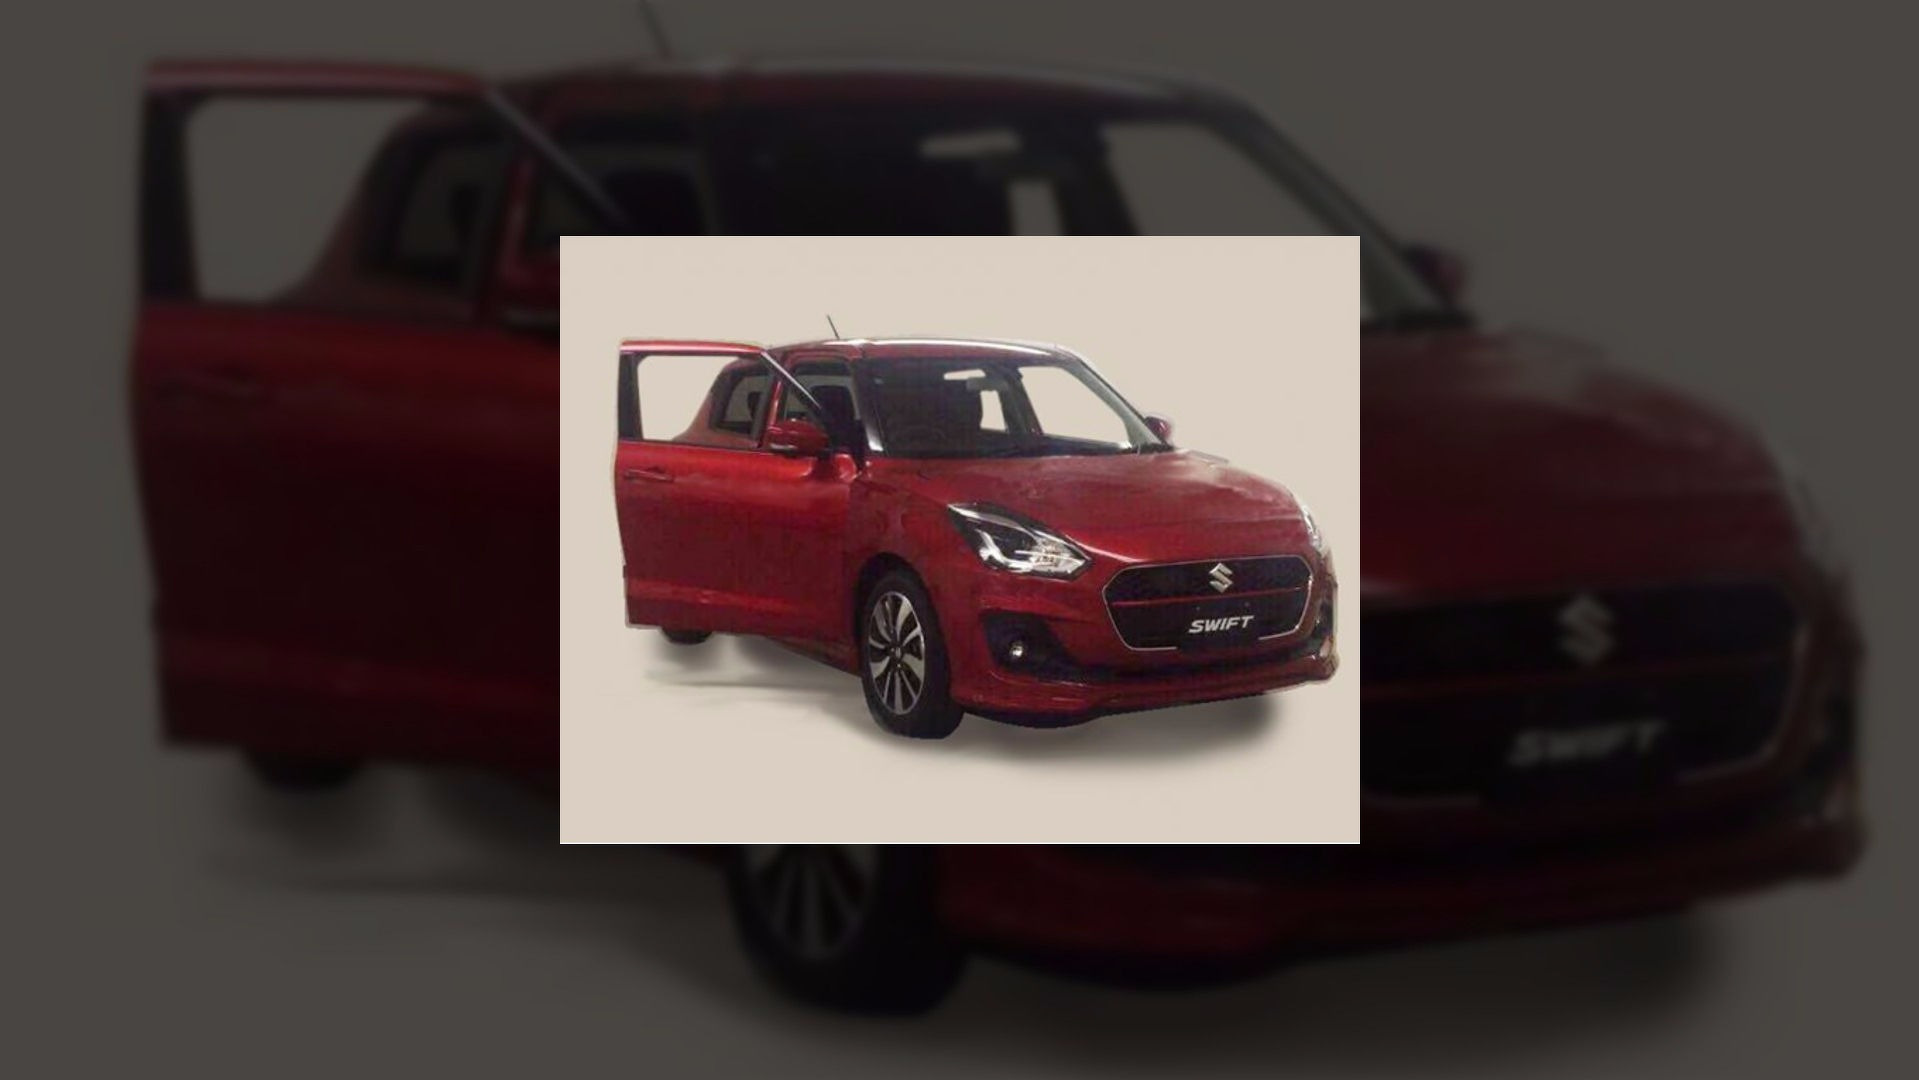 Photo of Agresif yüzlü yeni Suzuki Swift